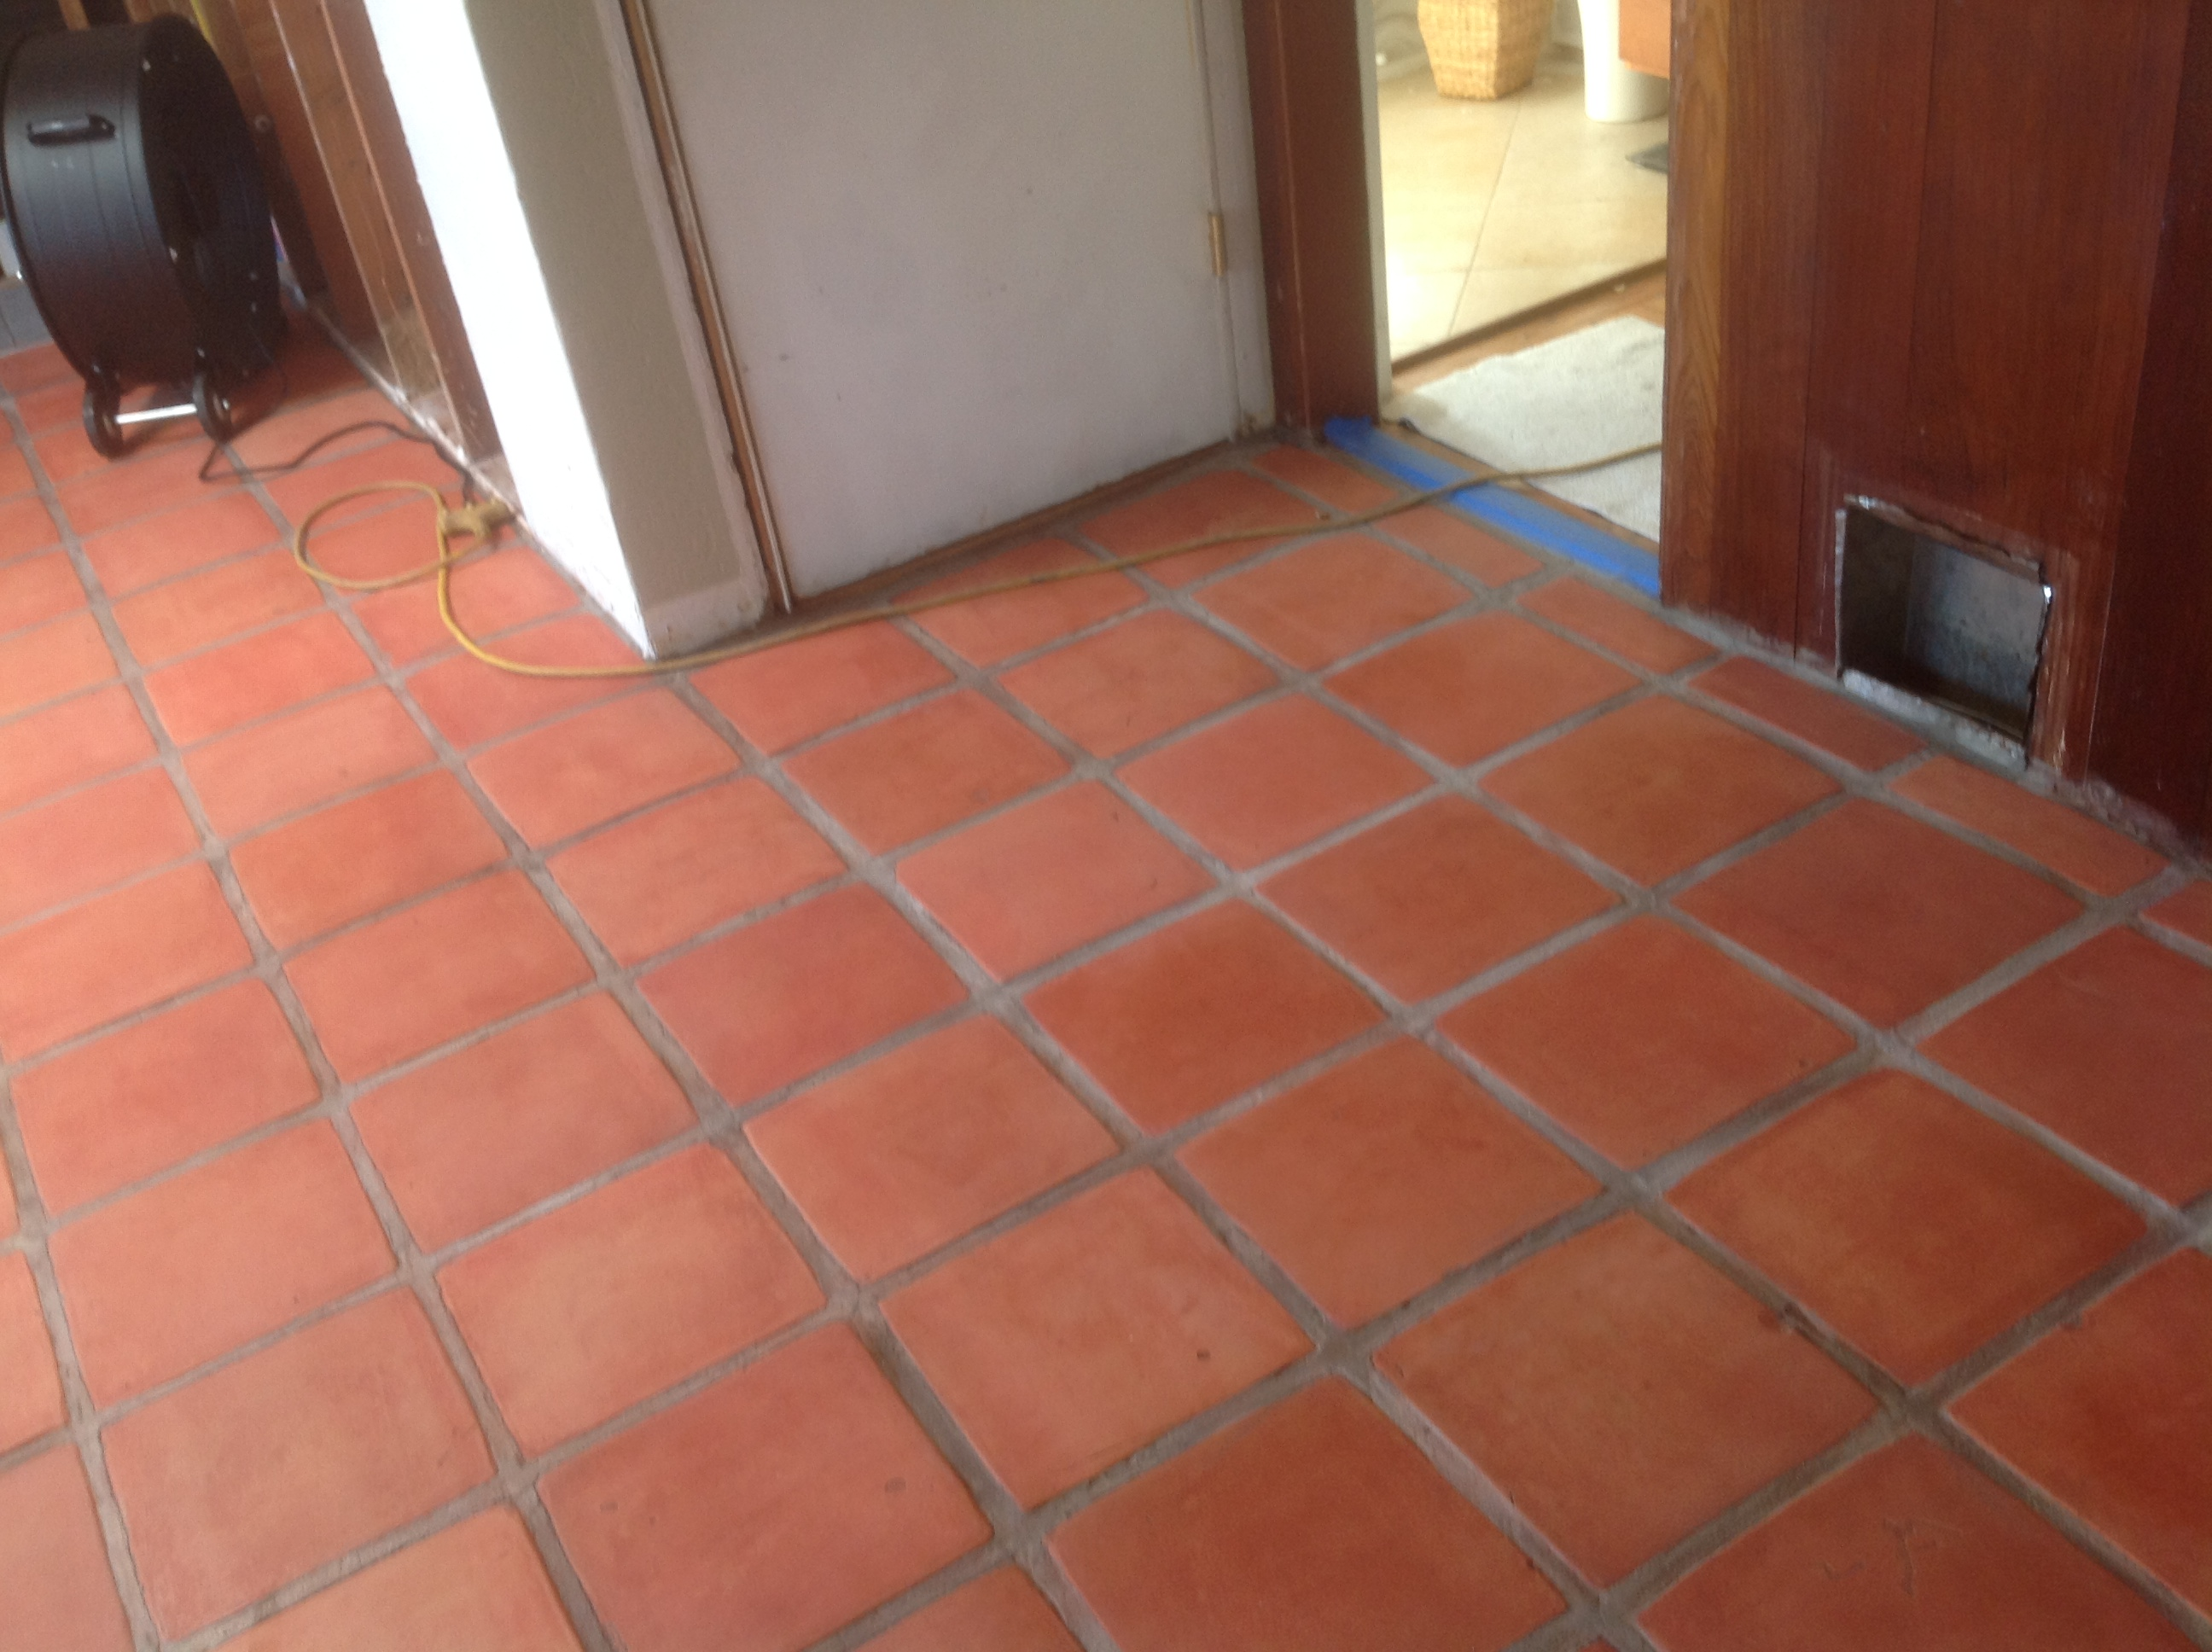 Sausalito tile floor and decorations ideas floor and decorations ideas staining and sealing saltillo tile the correct way california stained raw saltillo tile shiifo dailygadgetfo Image collections